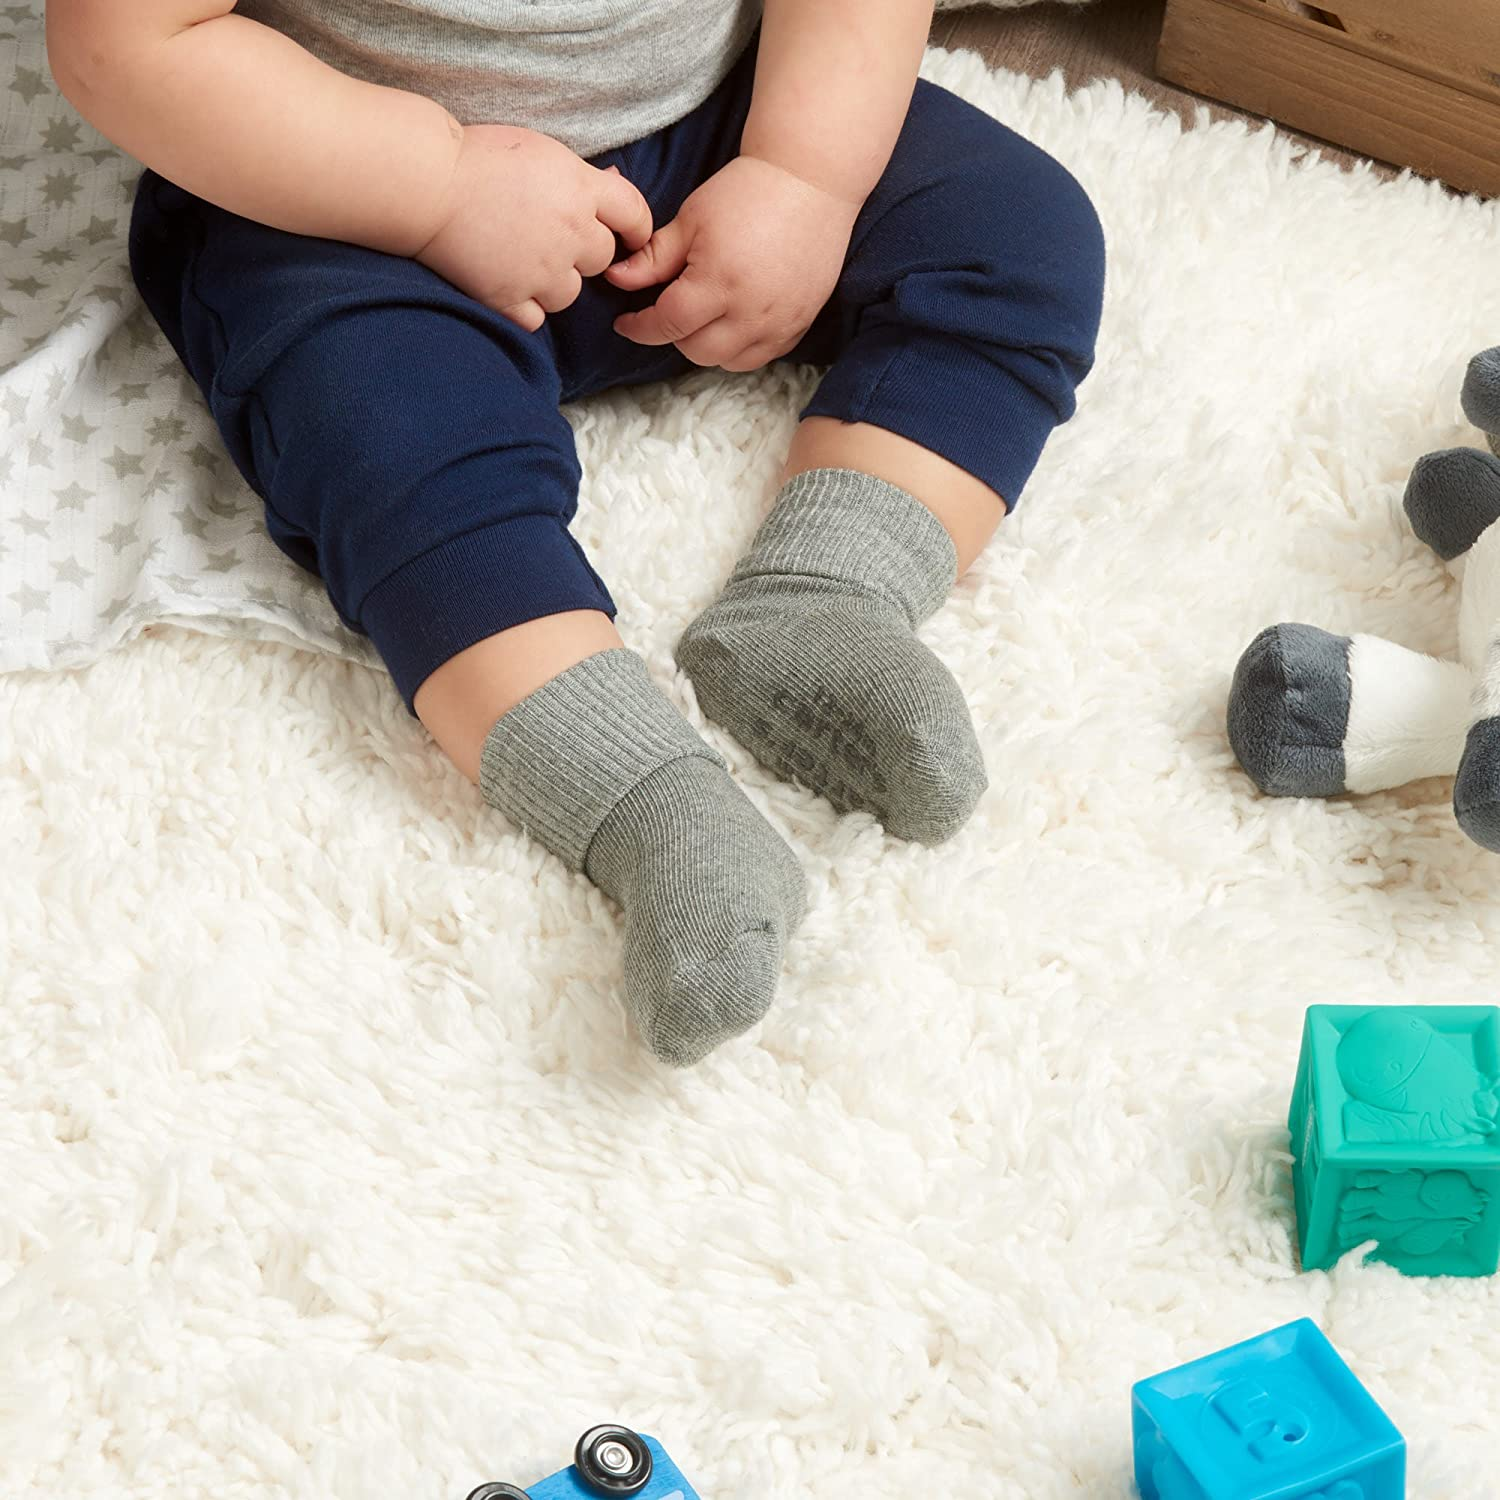 Carters Boys Baby Socks with Non-Skid Grippers